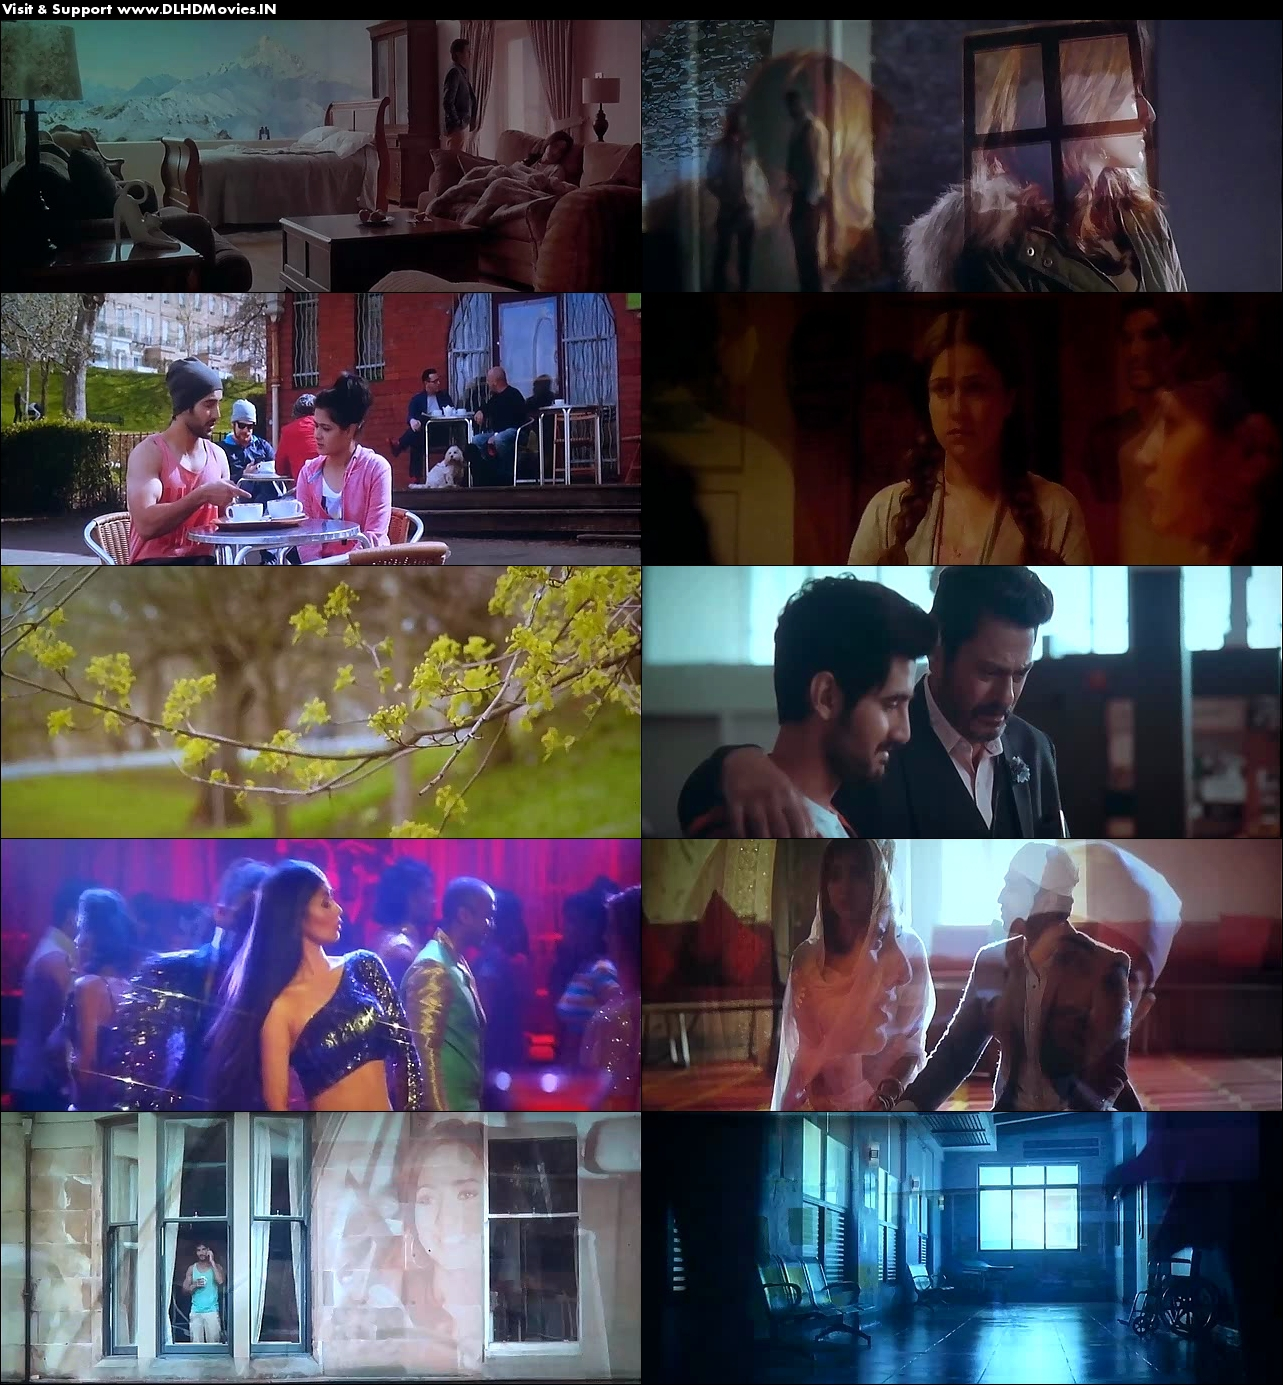 Tum Bin 2 Movie Screenshot